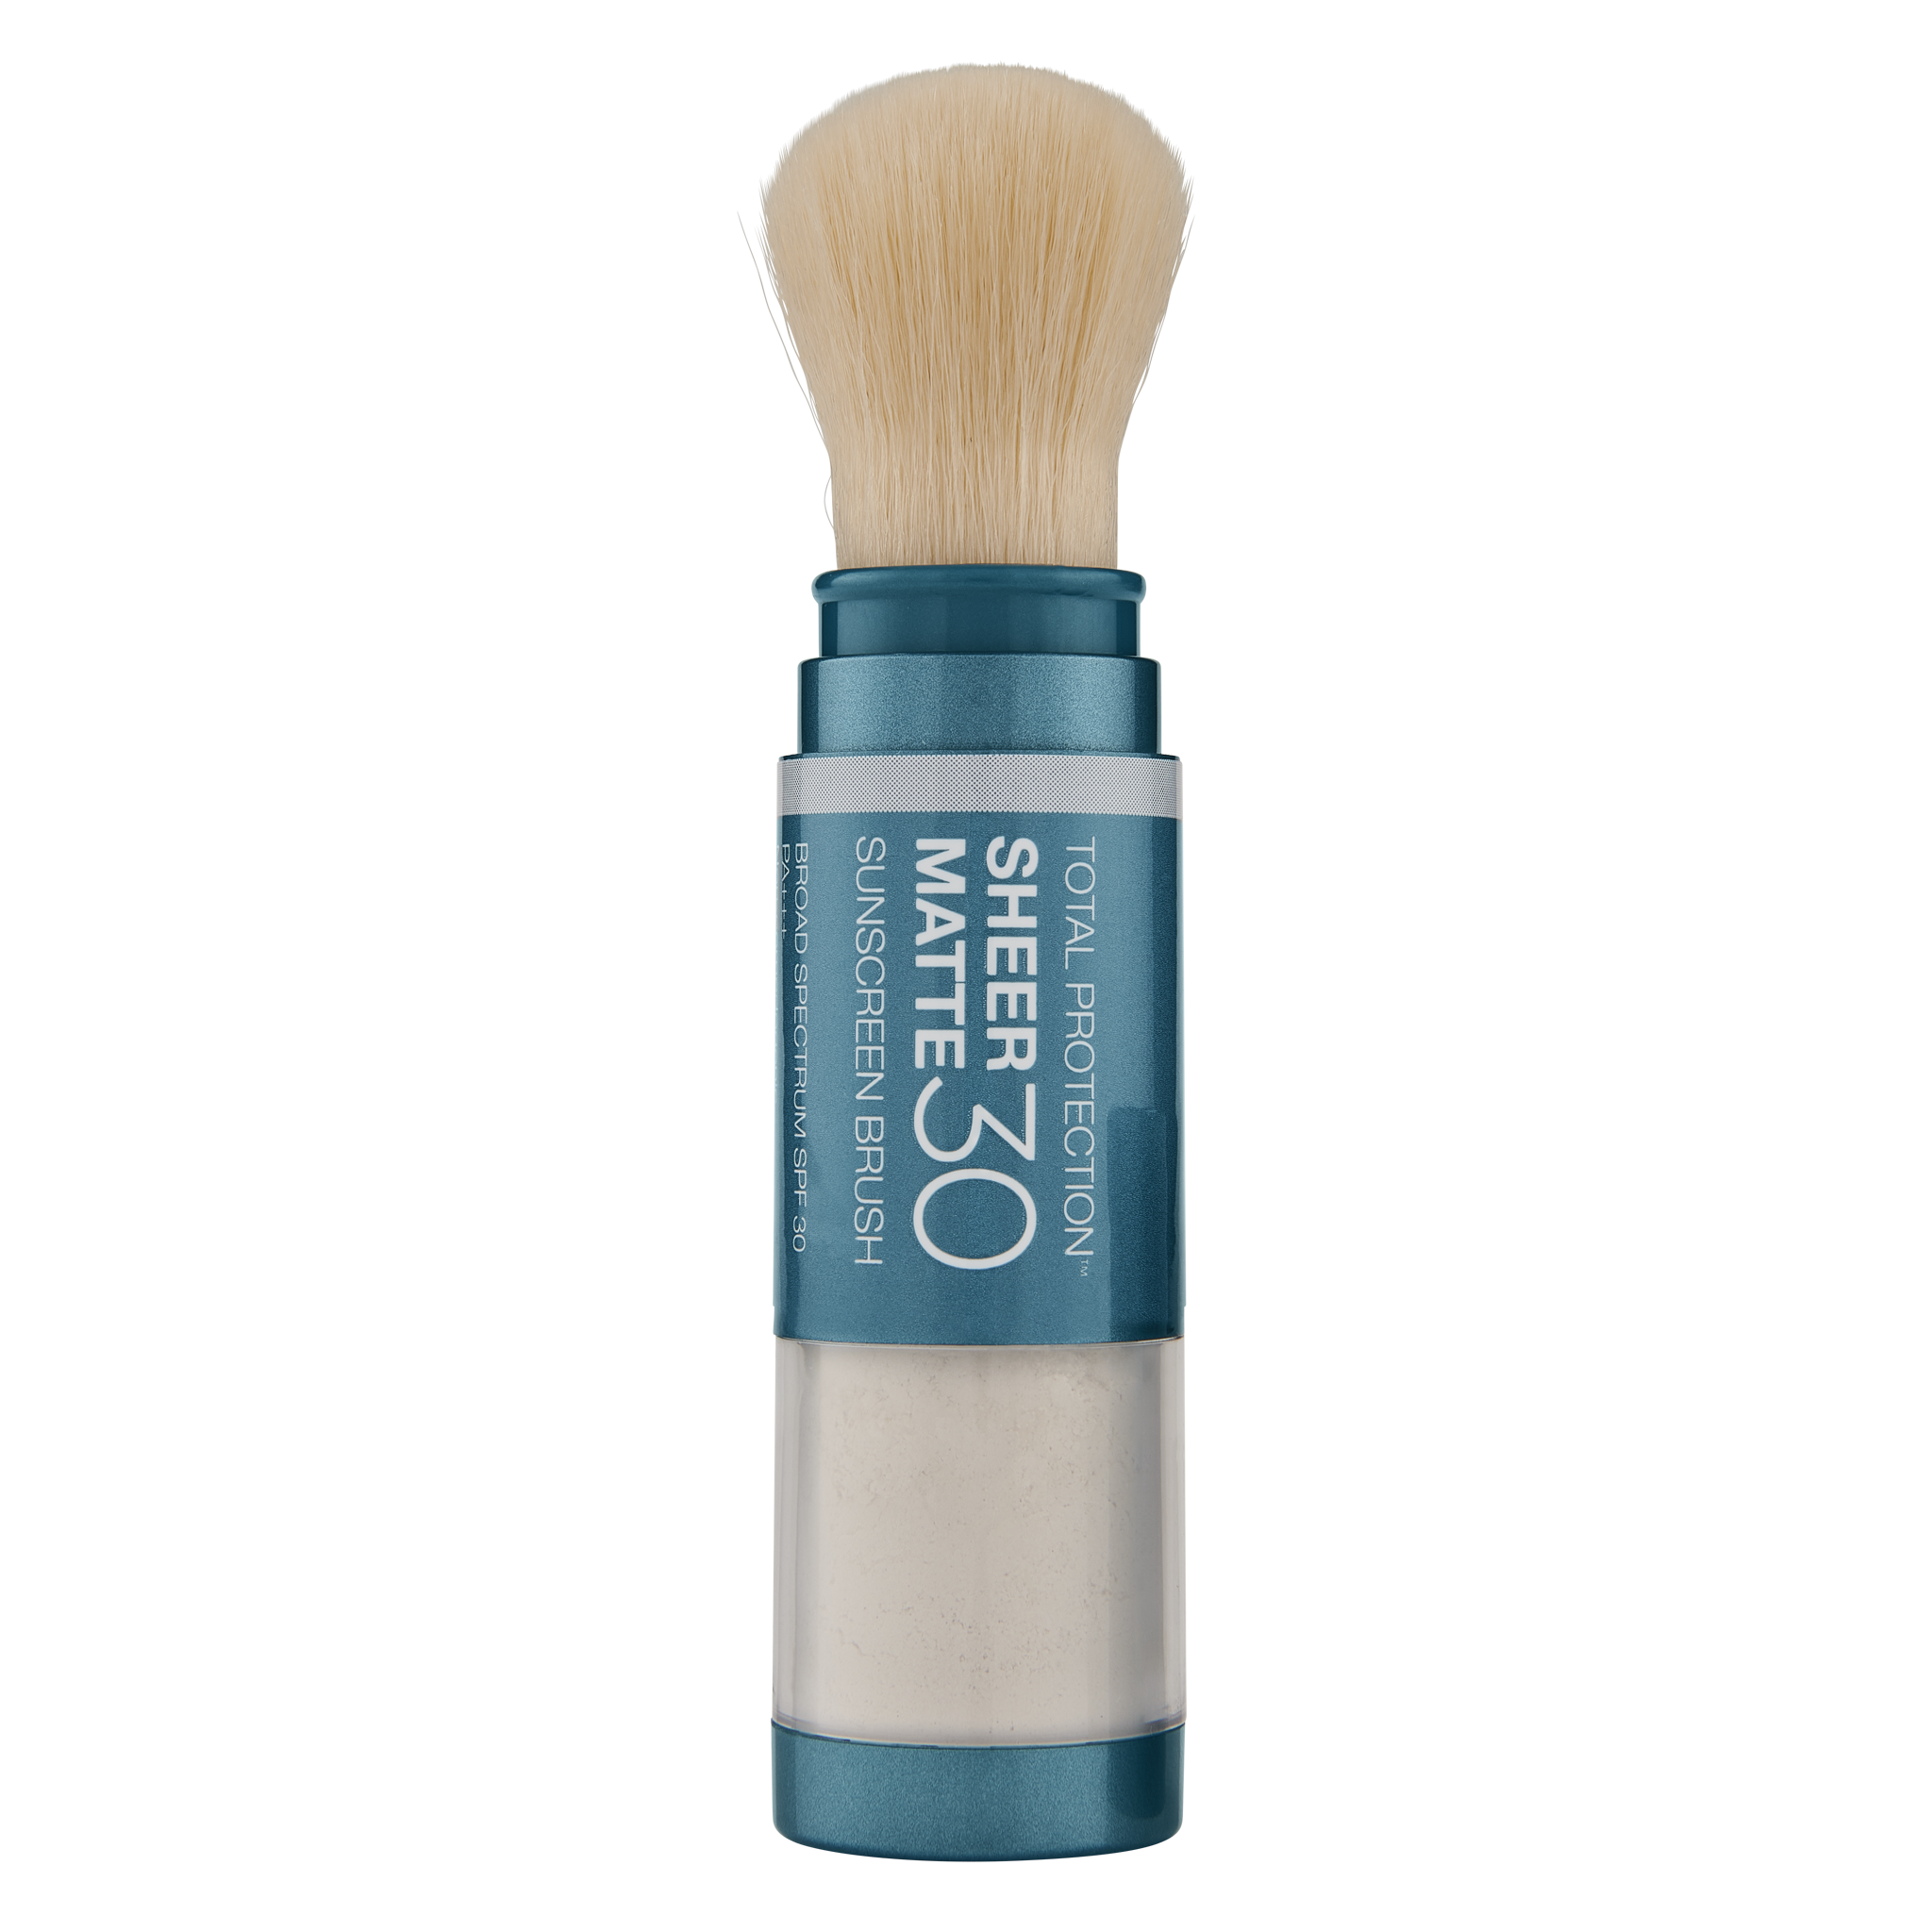 Sunforgettable® Total Protection™ Sheer Matte SPF 30 Sunscreen Brush || all